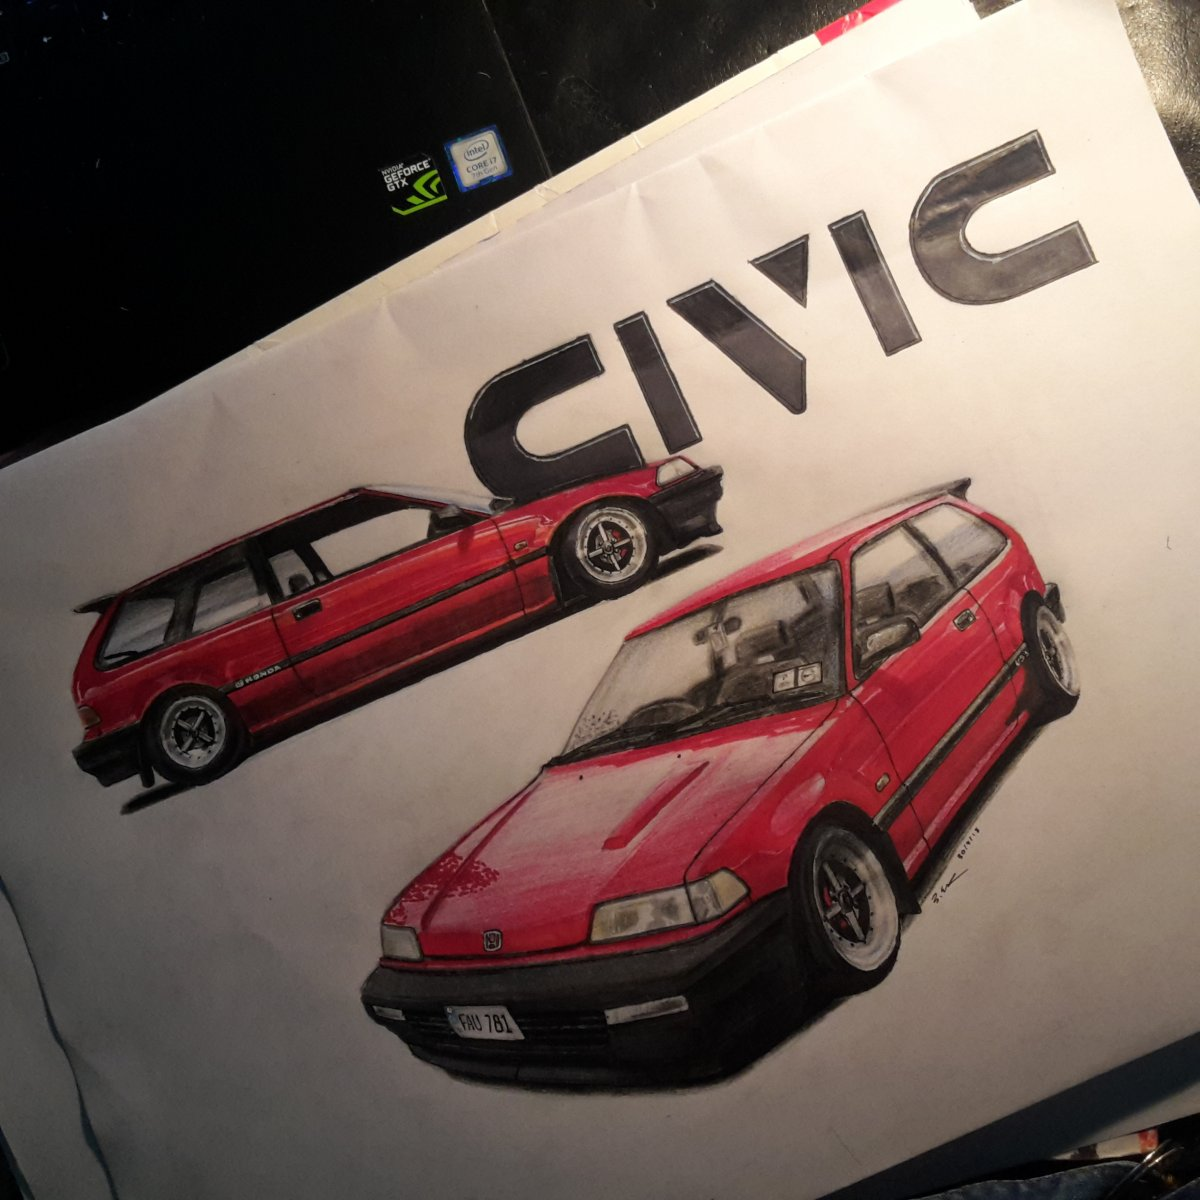 '89 Honda Civic EF